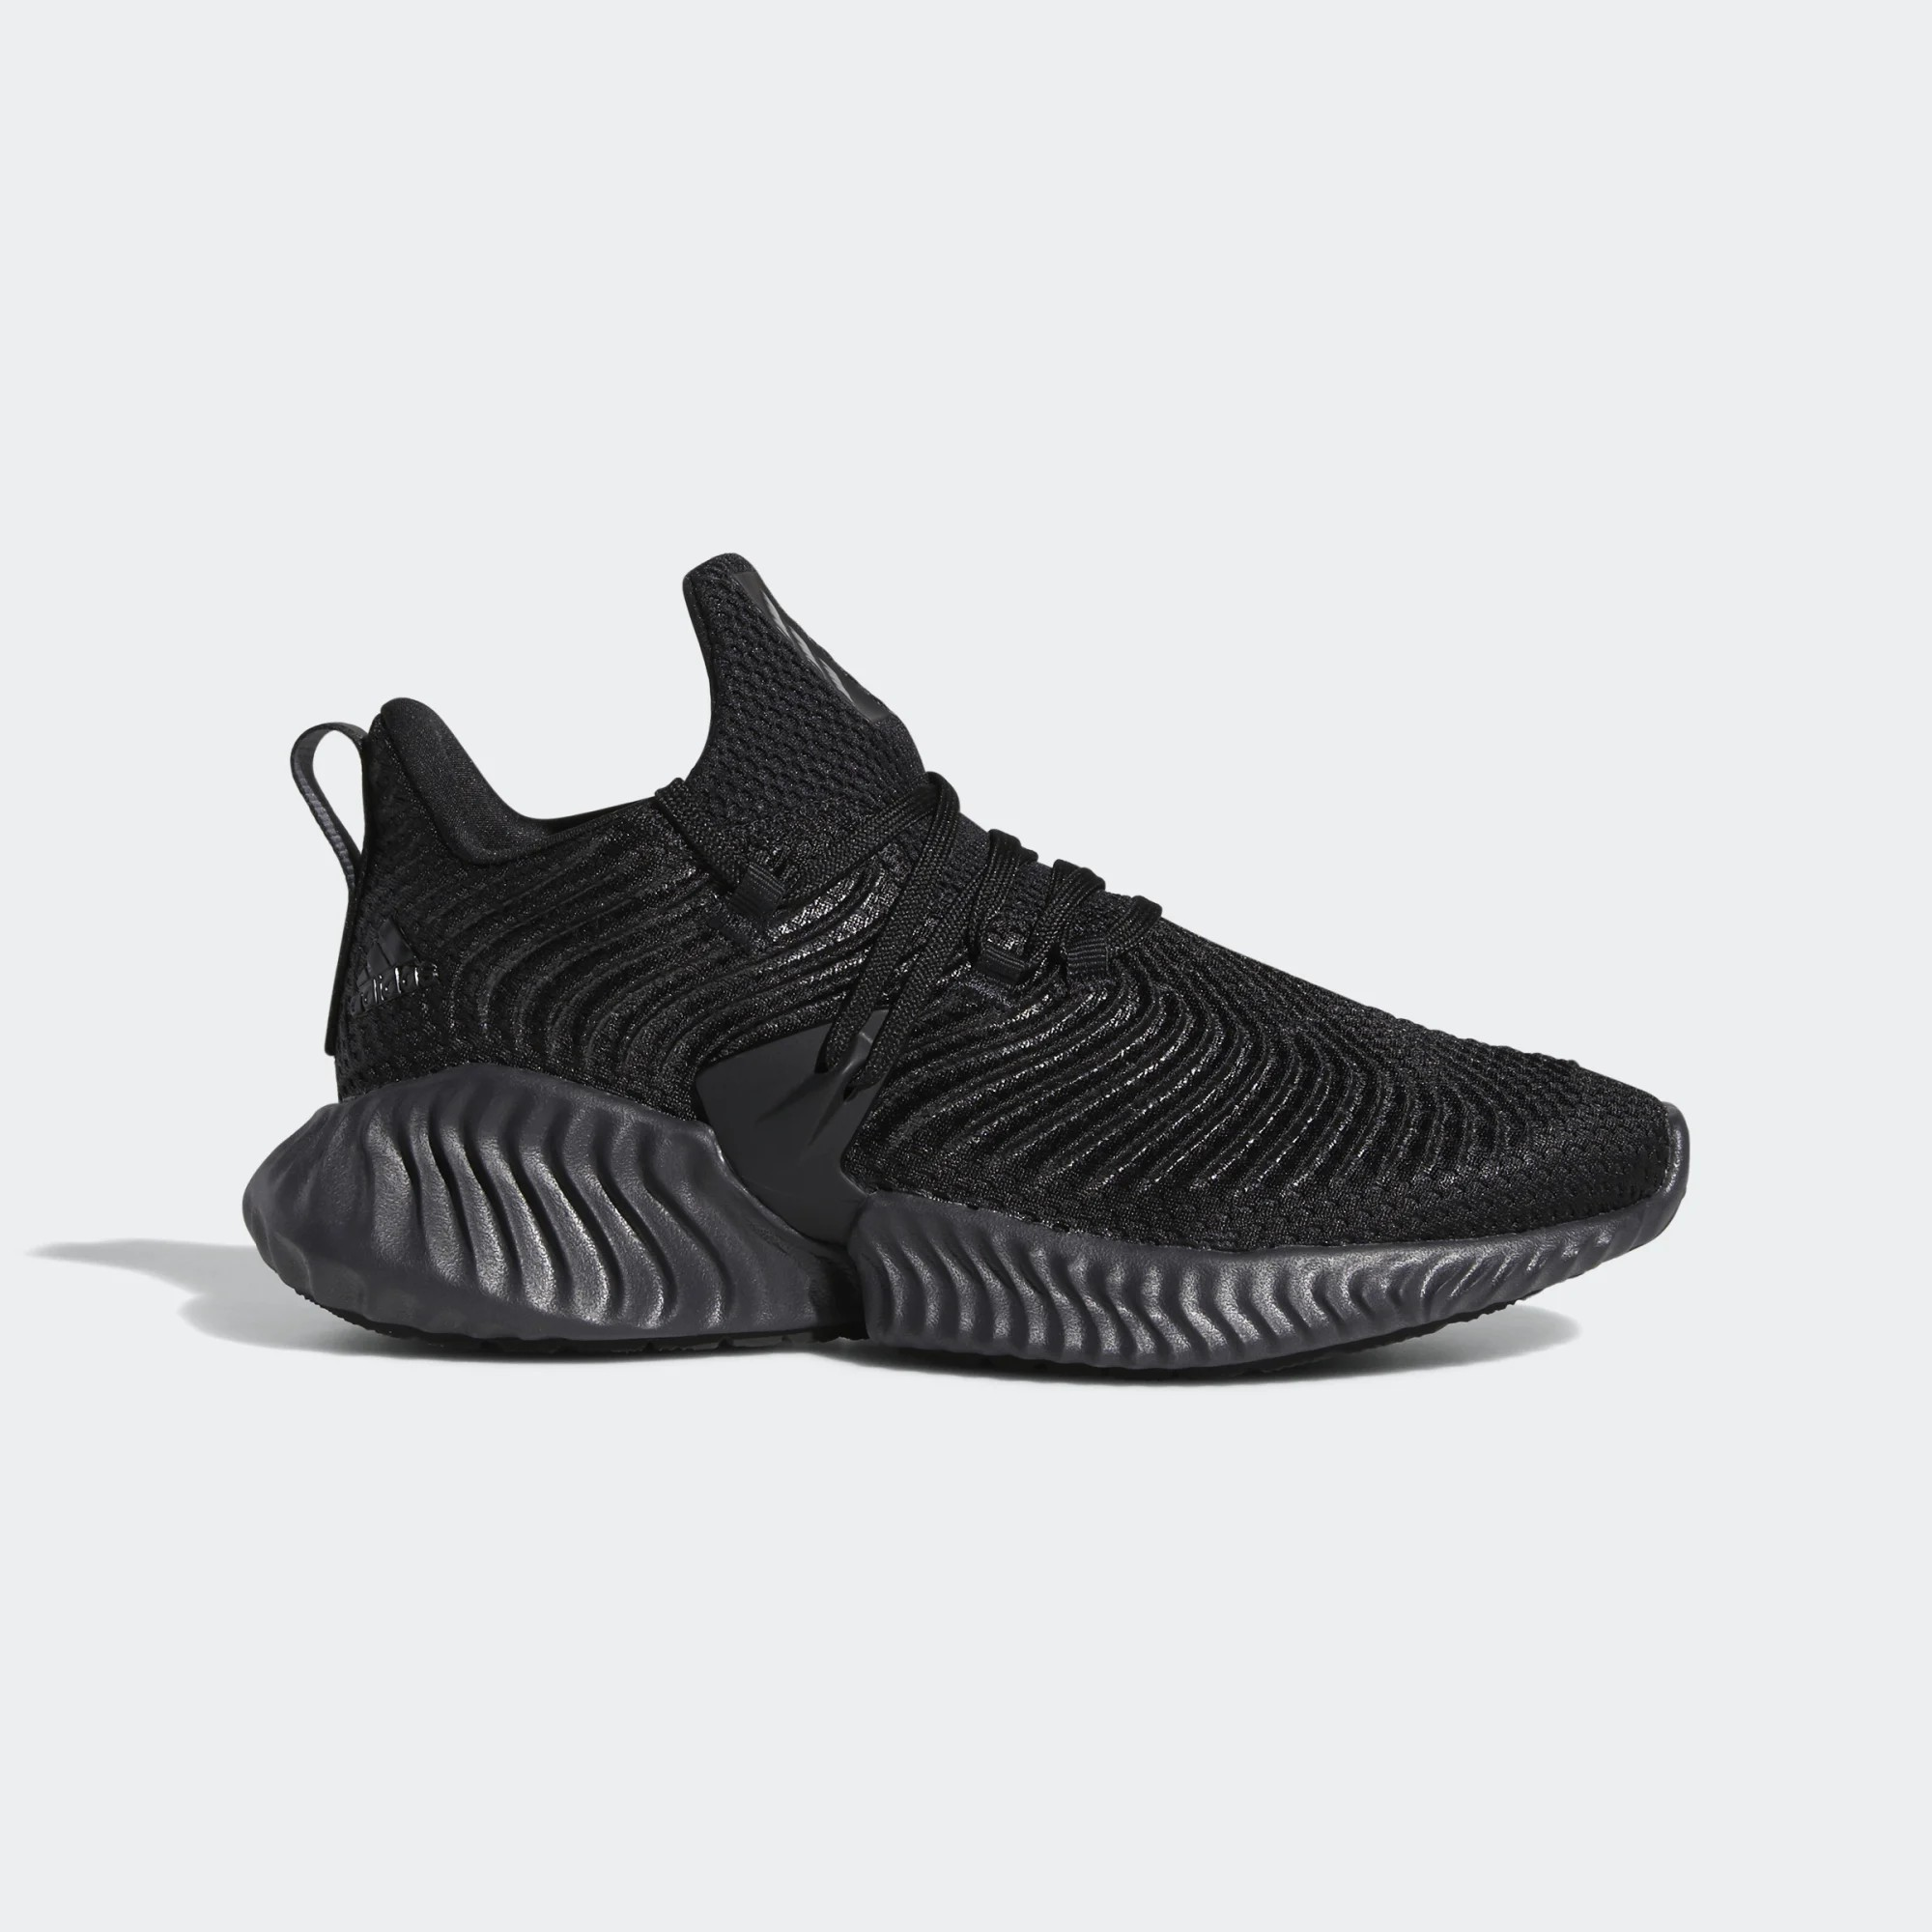 adidas Originals Alphabounce Instinct Black Sneakers D97320